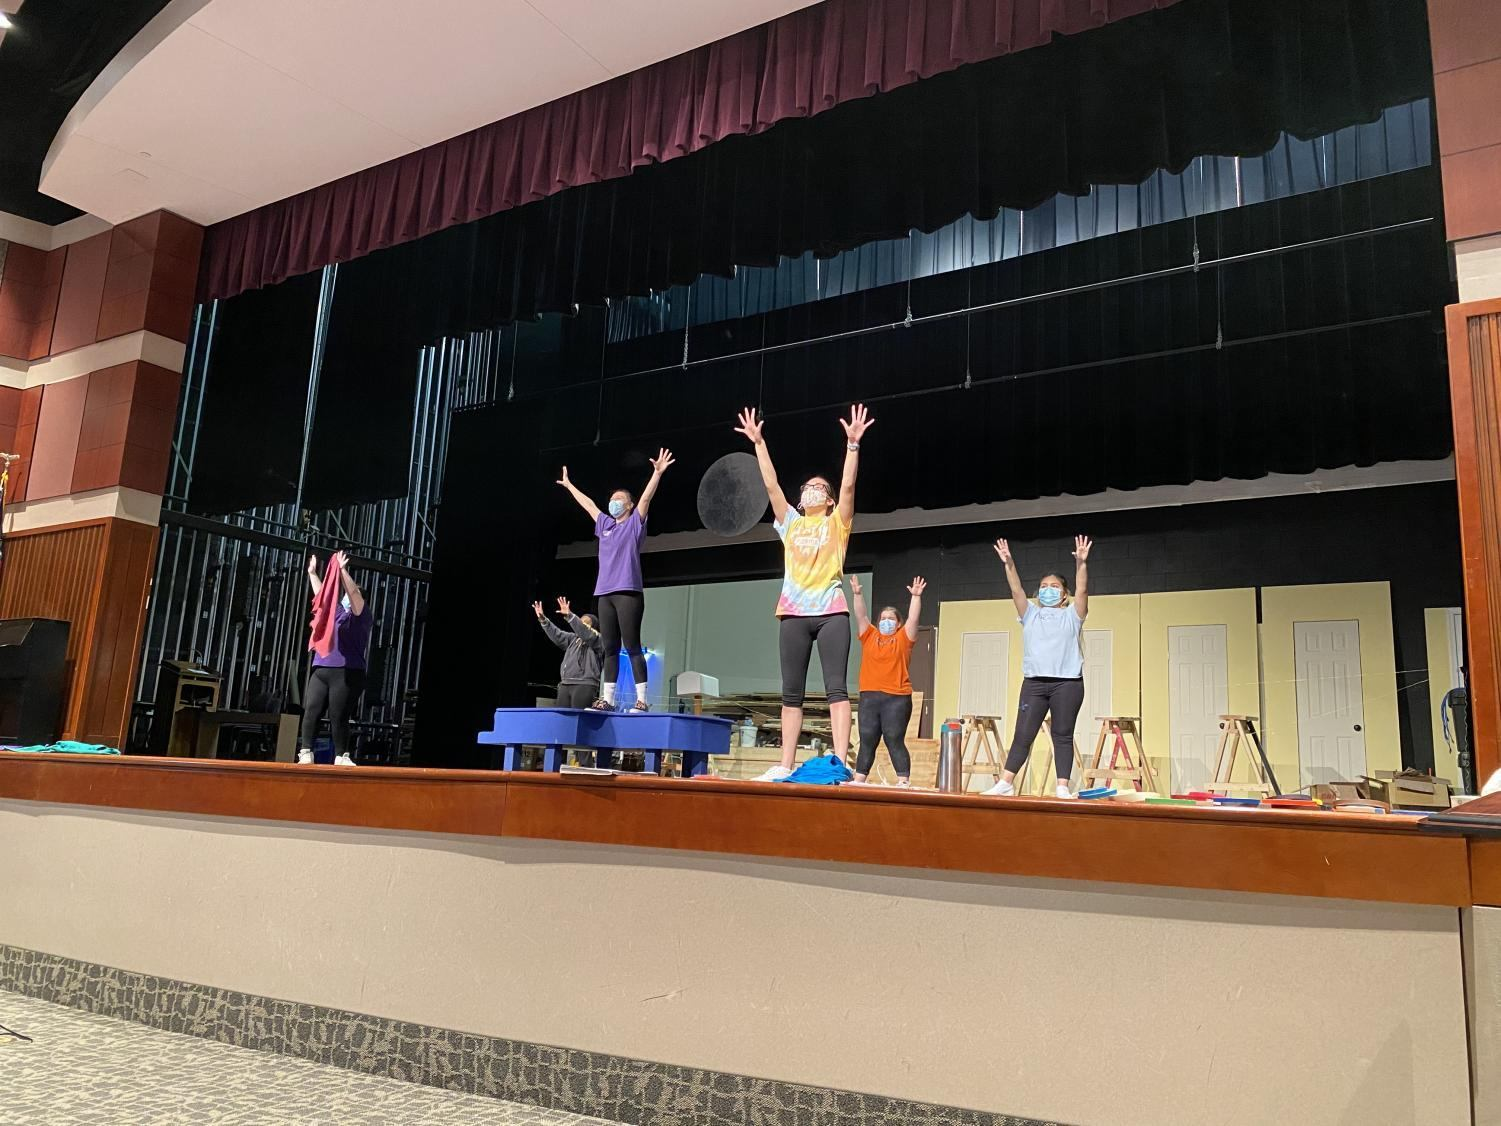 Actors in the theater practicing for You're a Good Man Charlie Brown